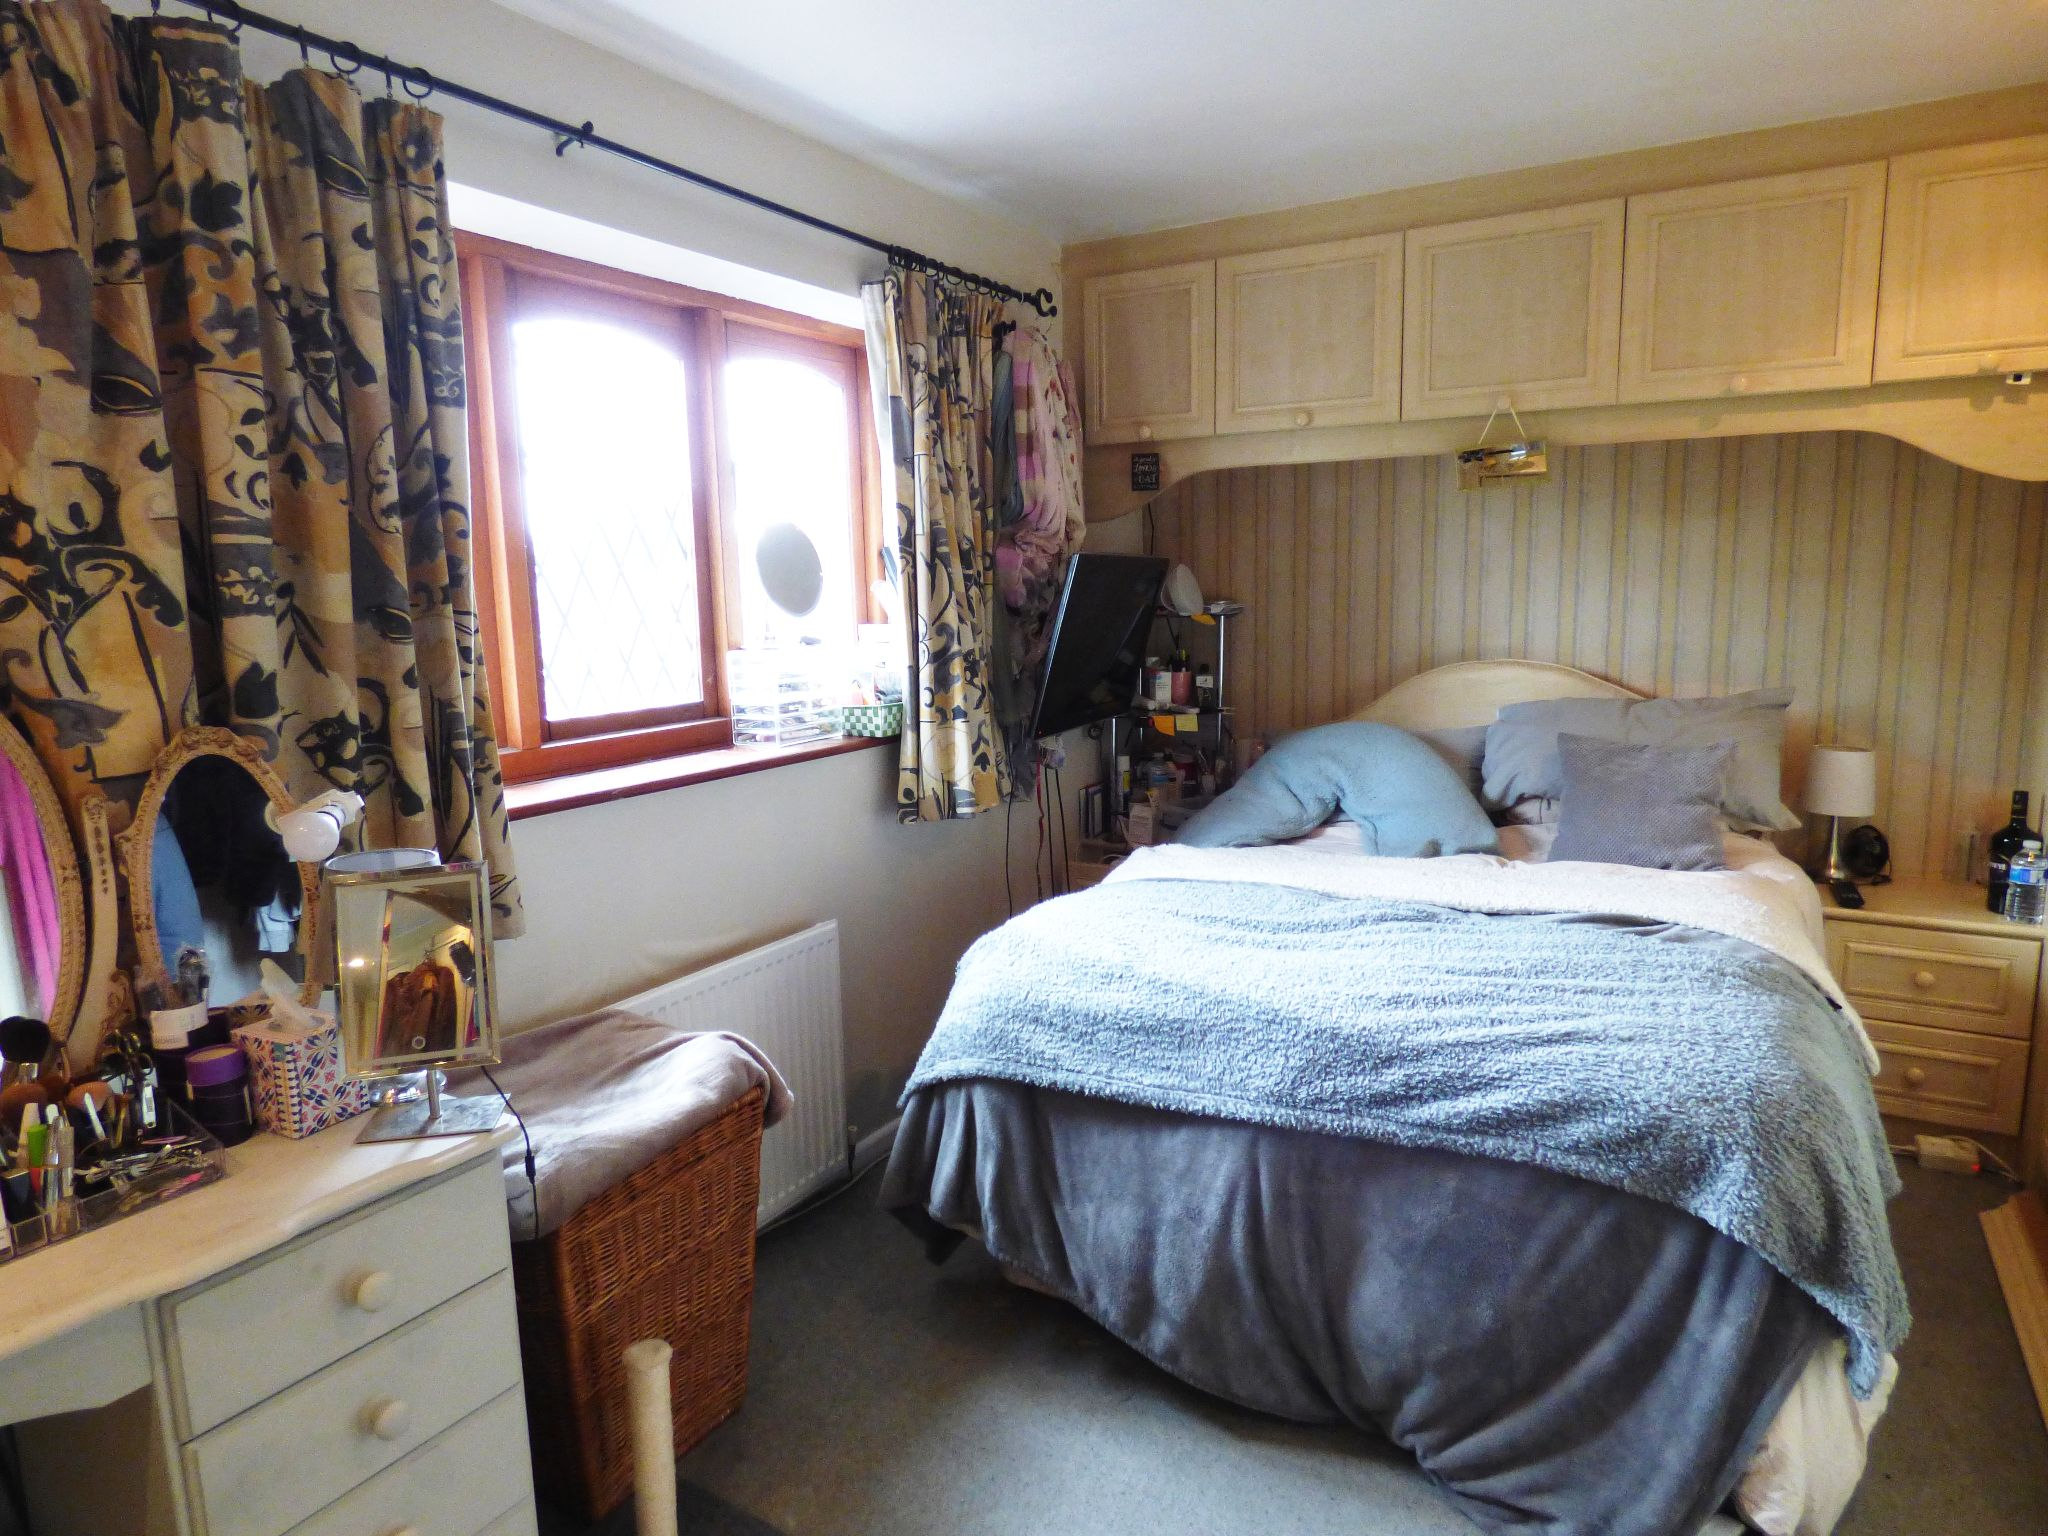 4 Bedroom Detached House For Sale - Bedroom Two